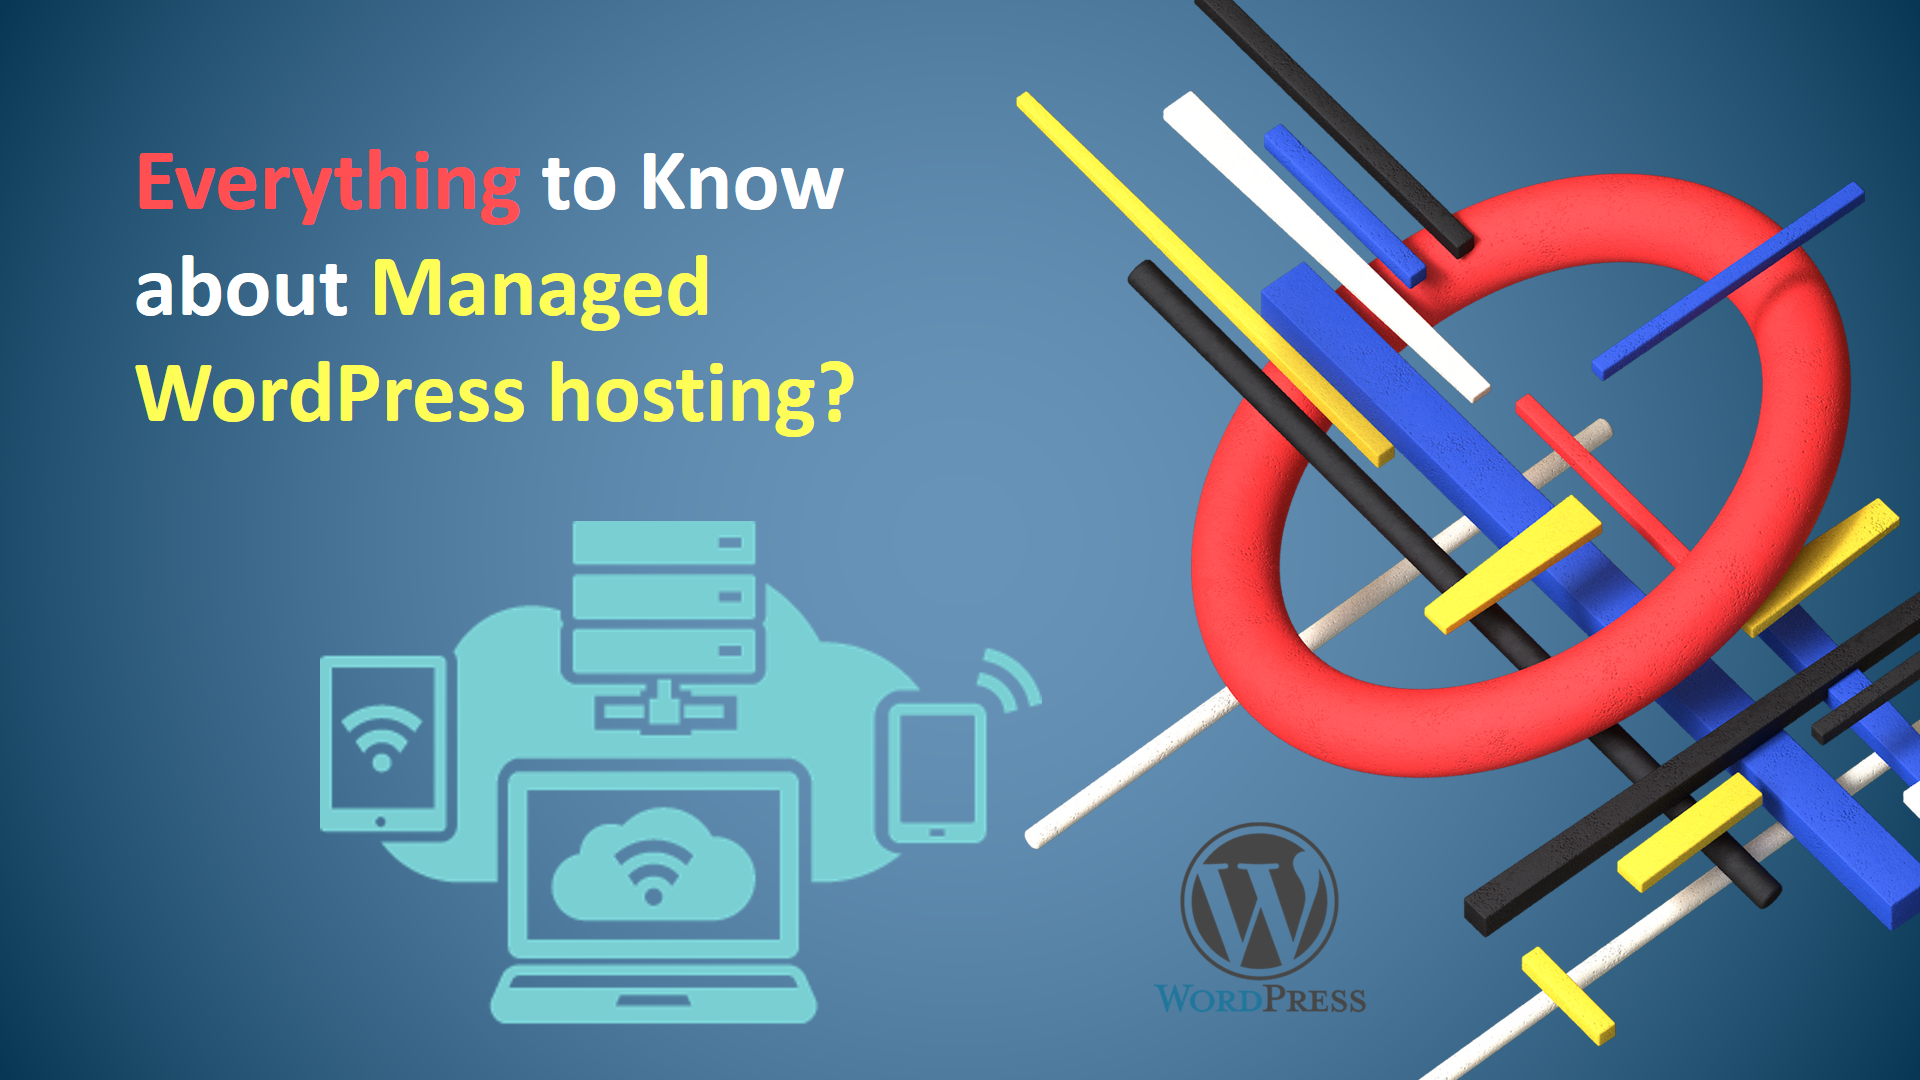 Everything to Know about Managed WordPress hosting?